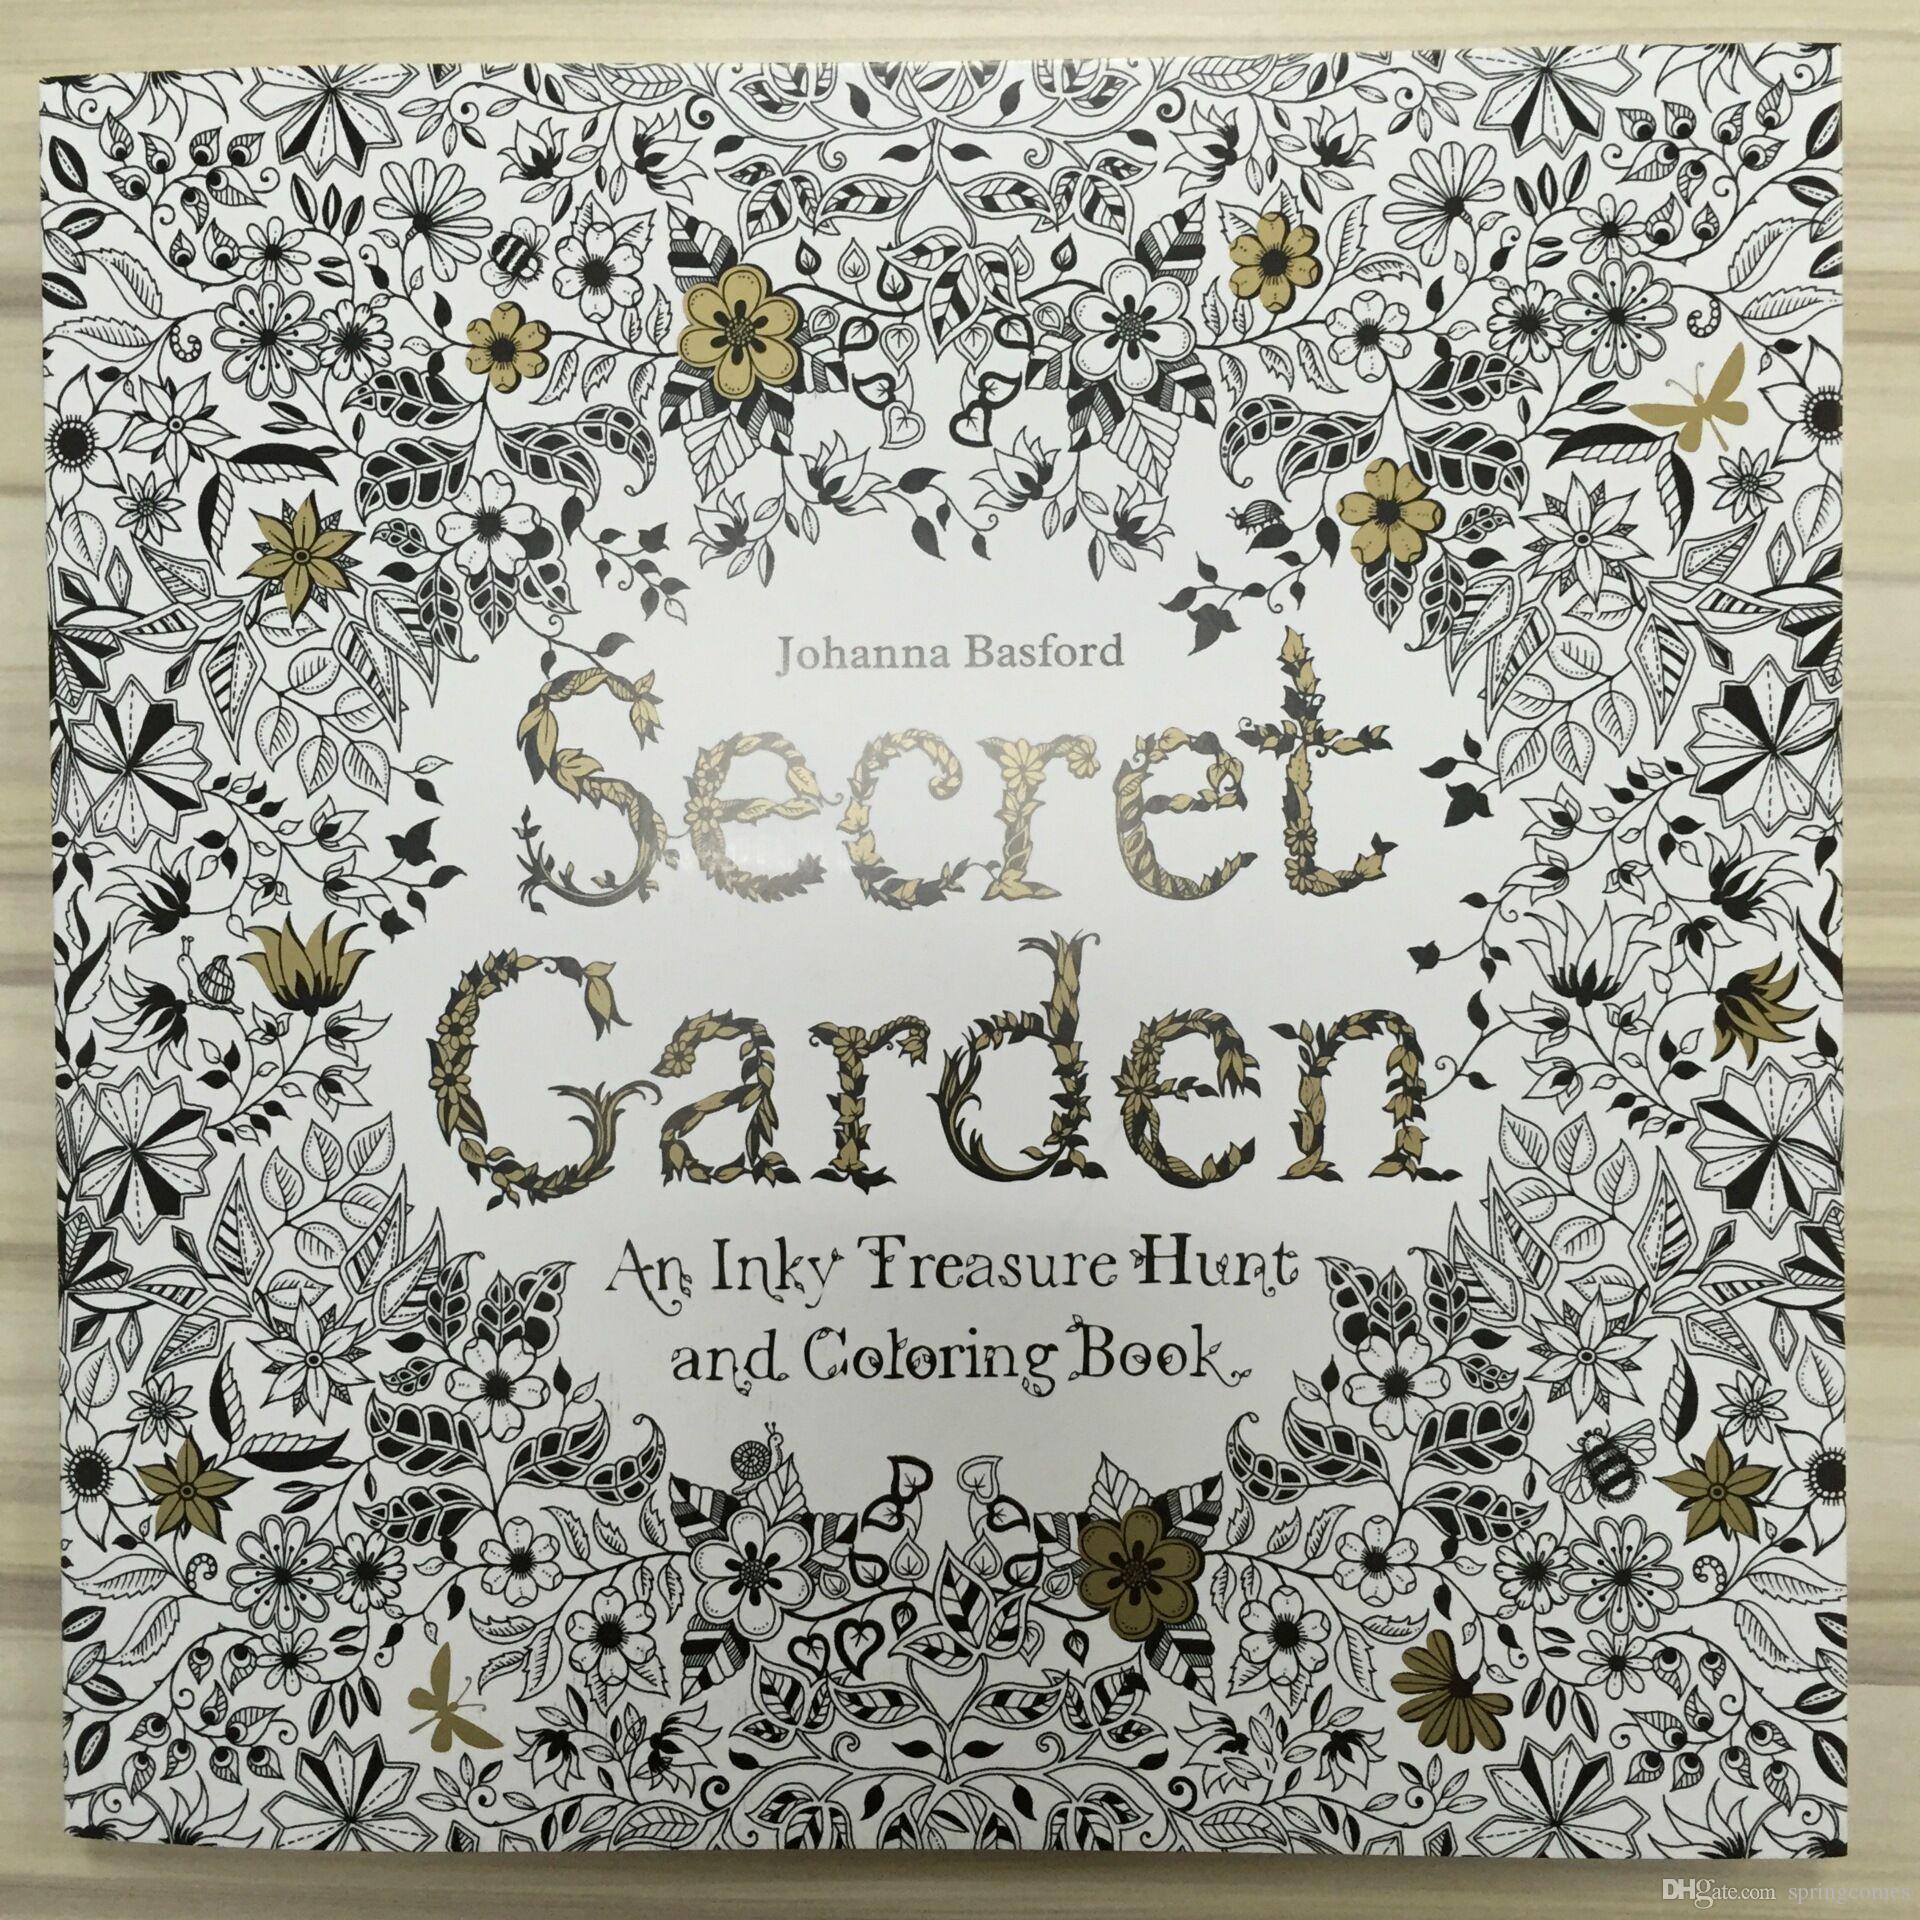 Secret Garden Colouring Book An Inky Treasure Hunt For Adult Kids Creative Therapy Doodling Drawing Books Adhesive Binding DHL